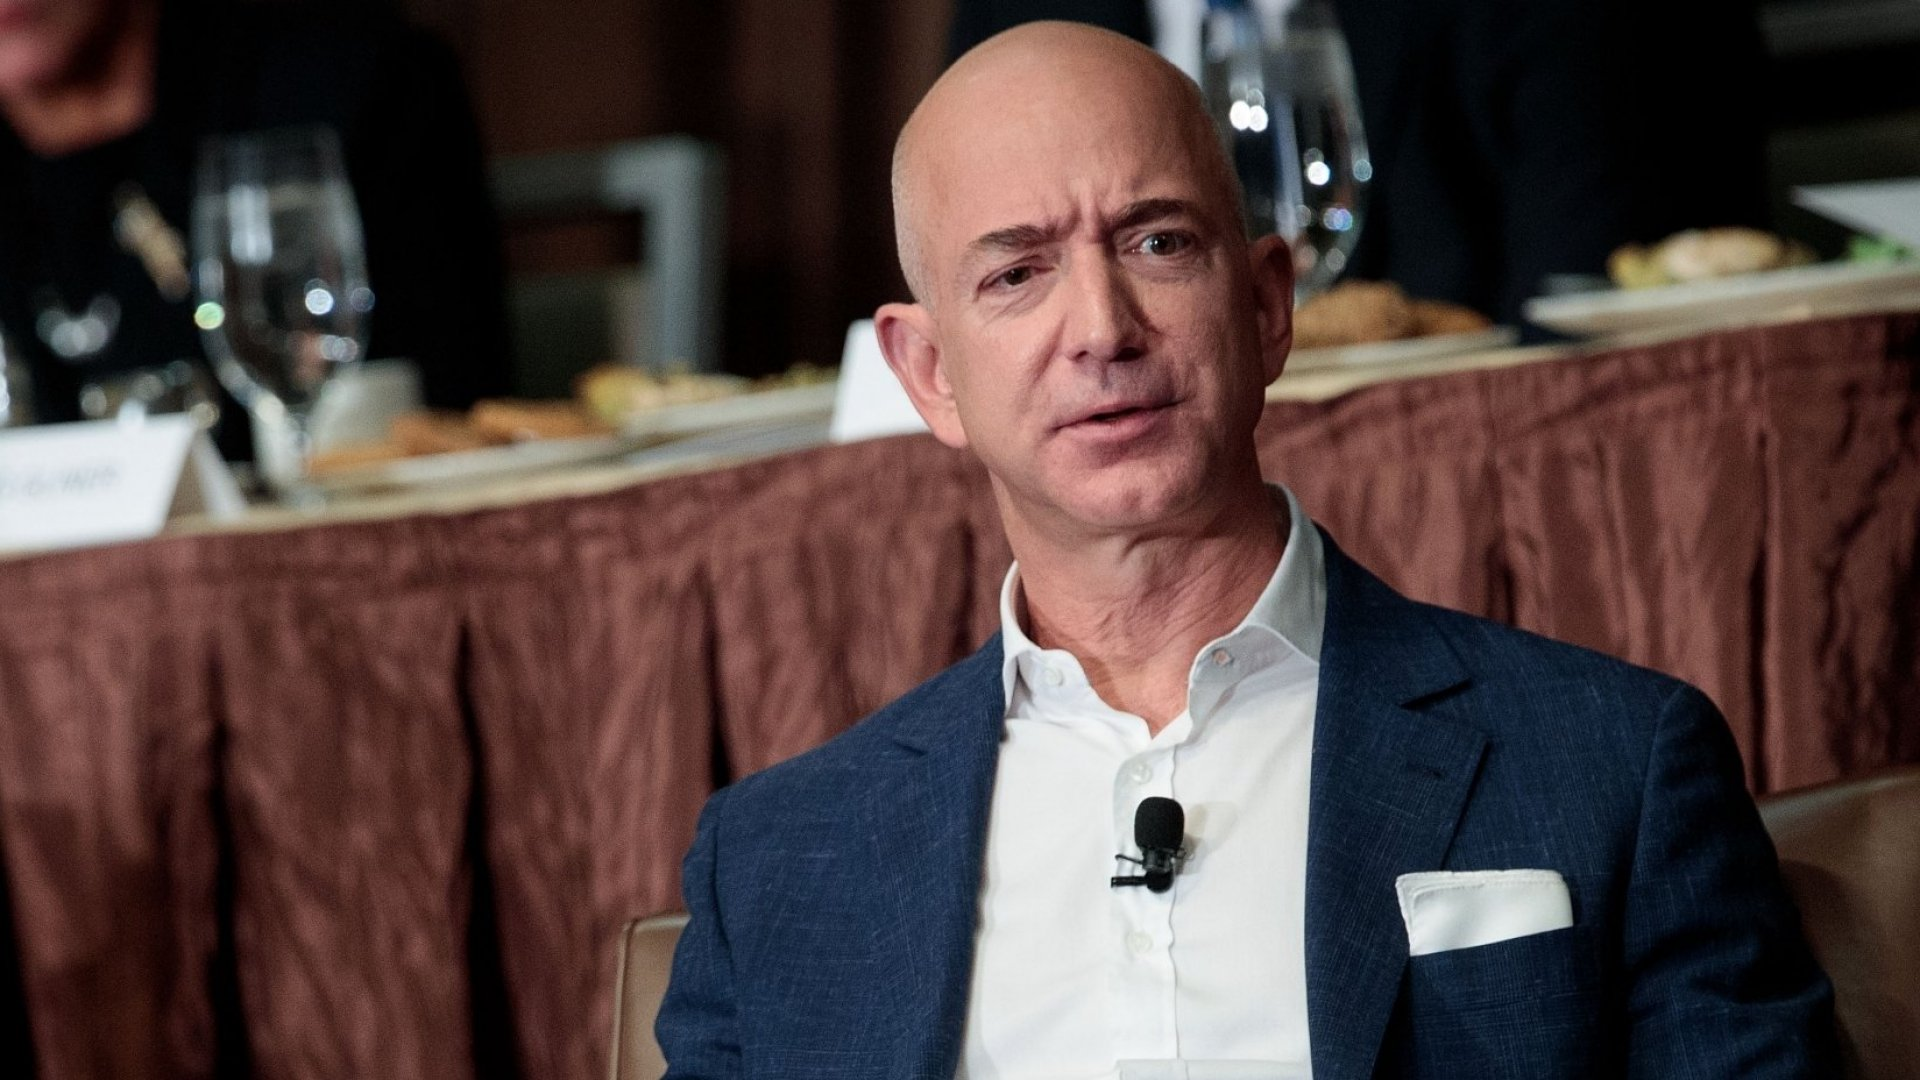 Jeff Bezos Was Asked What He Thought About the Increased Scrutiny of Amazon. His Response Was Brilliant